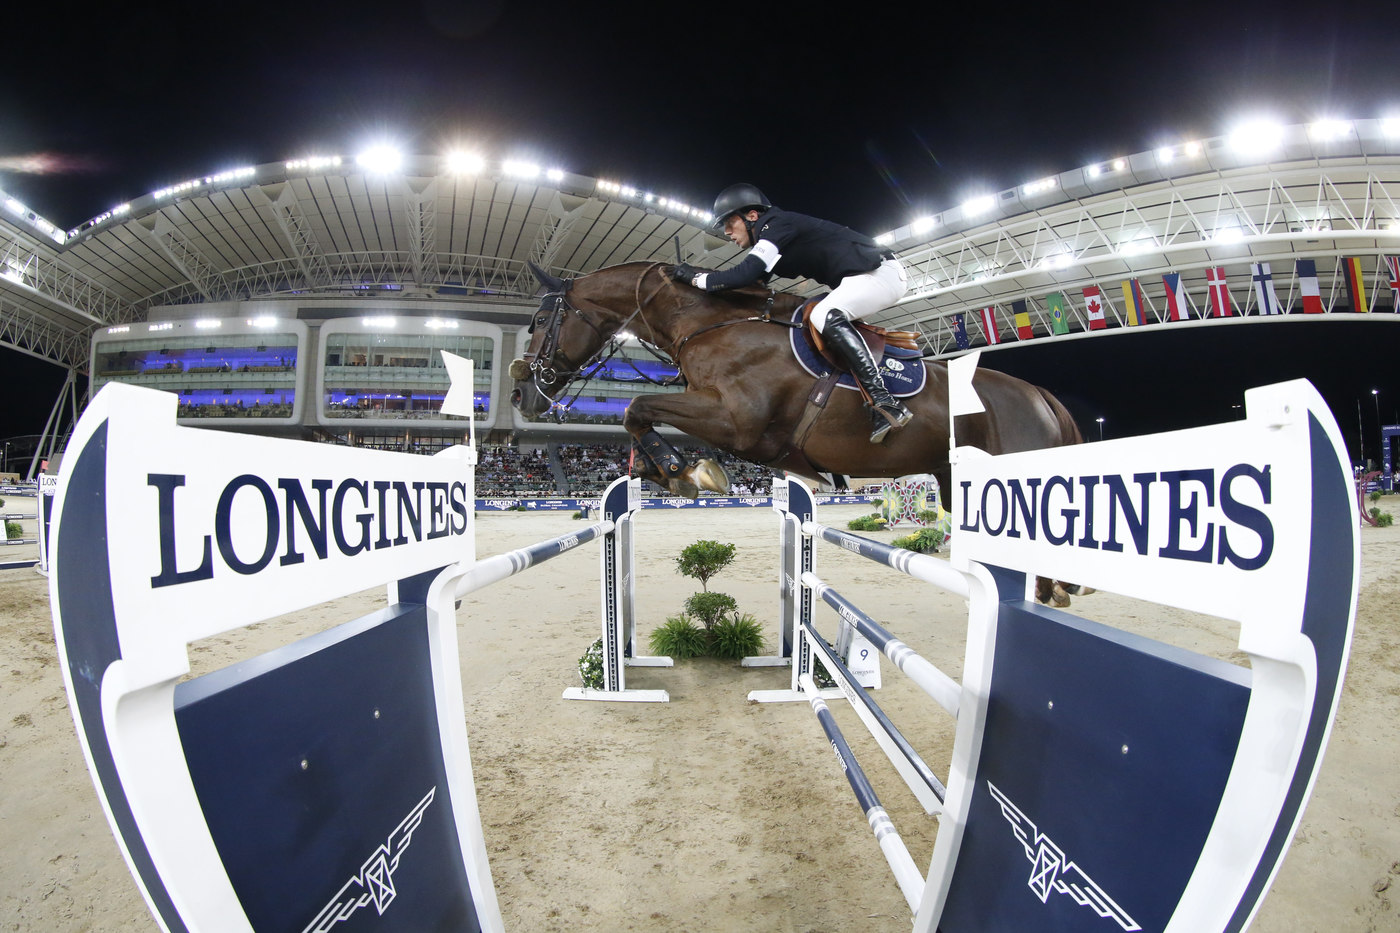 Longines Show Jumping Event: Ben Maher claimed stunning victory at the 2018 Longines Global Champions Tour of Doha 4